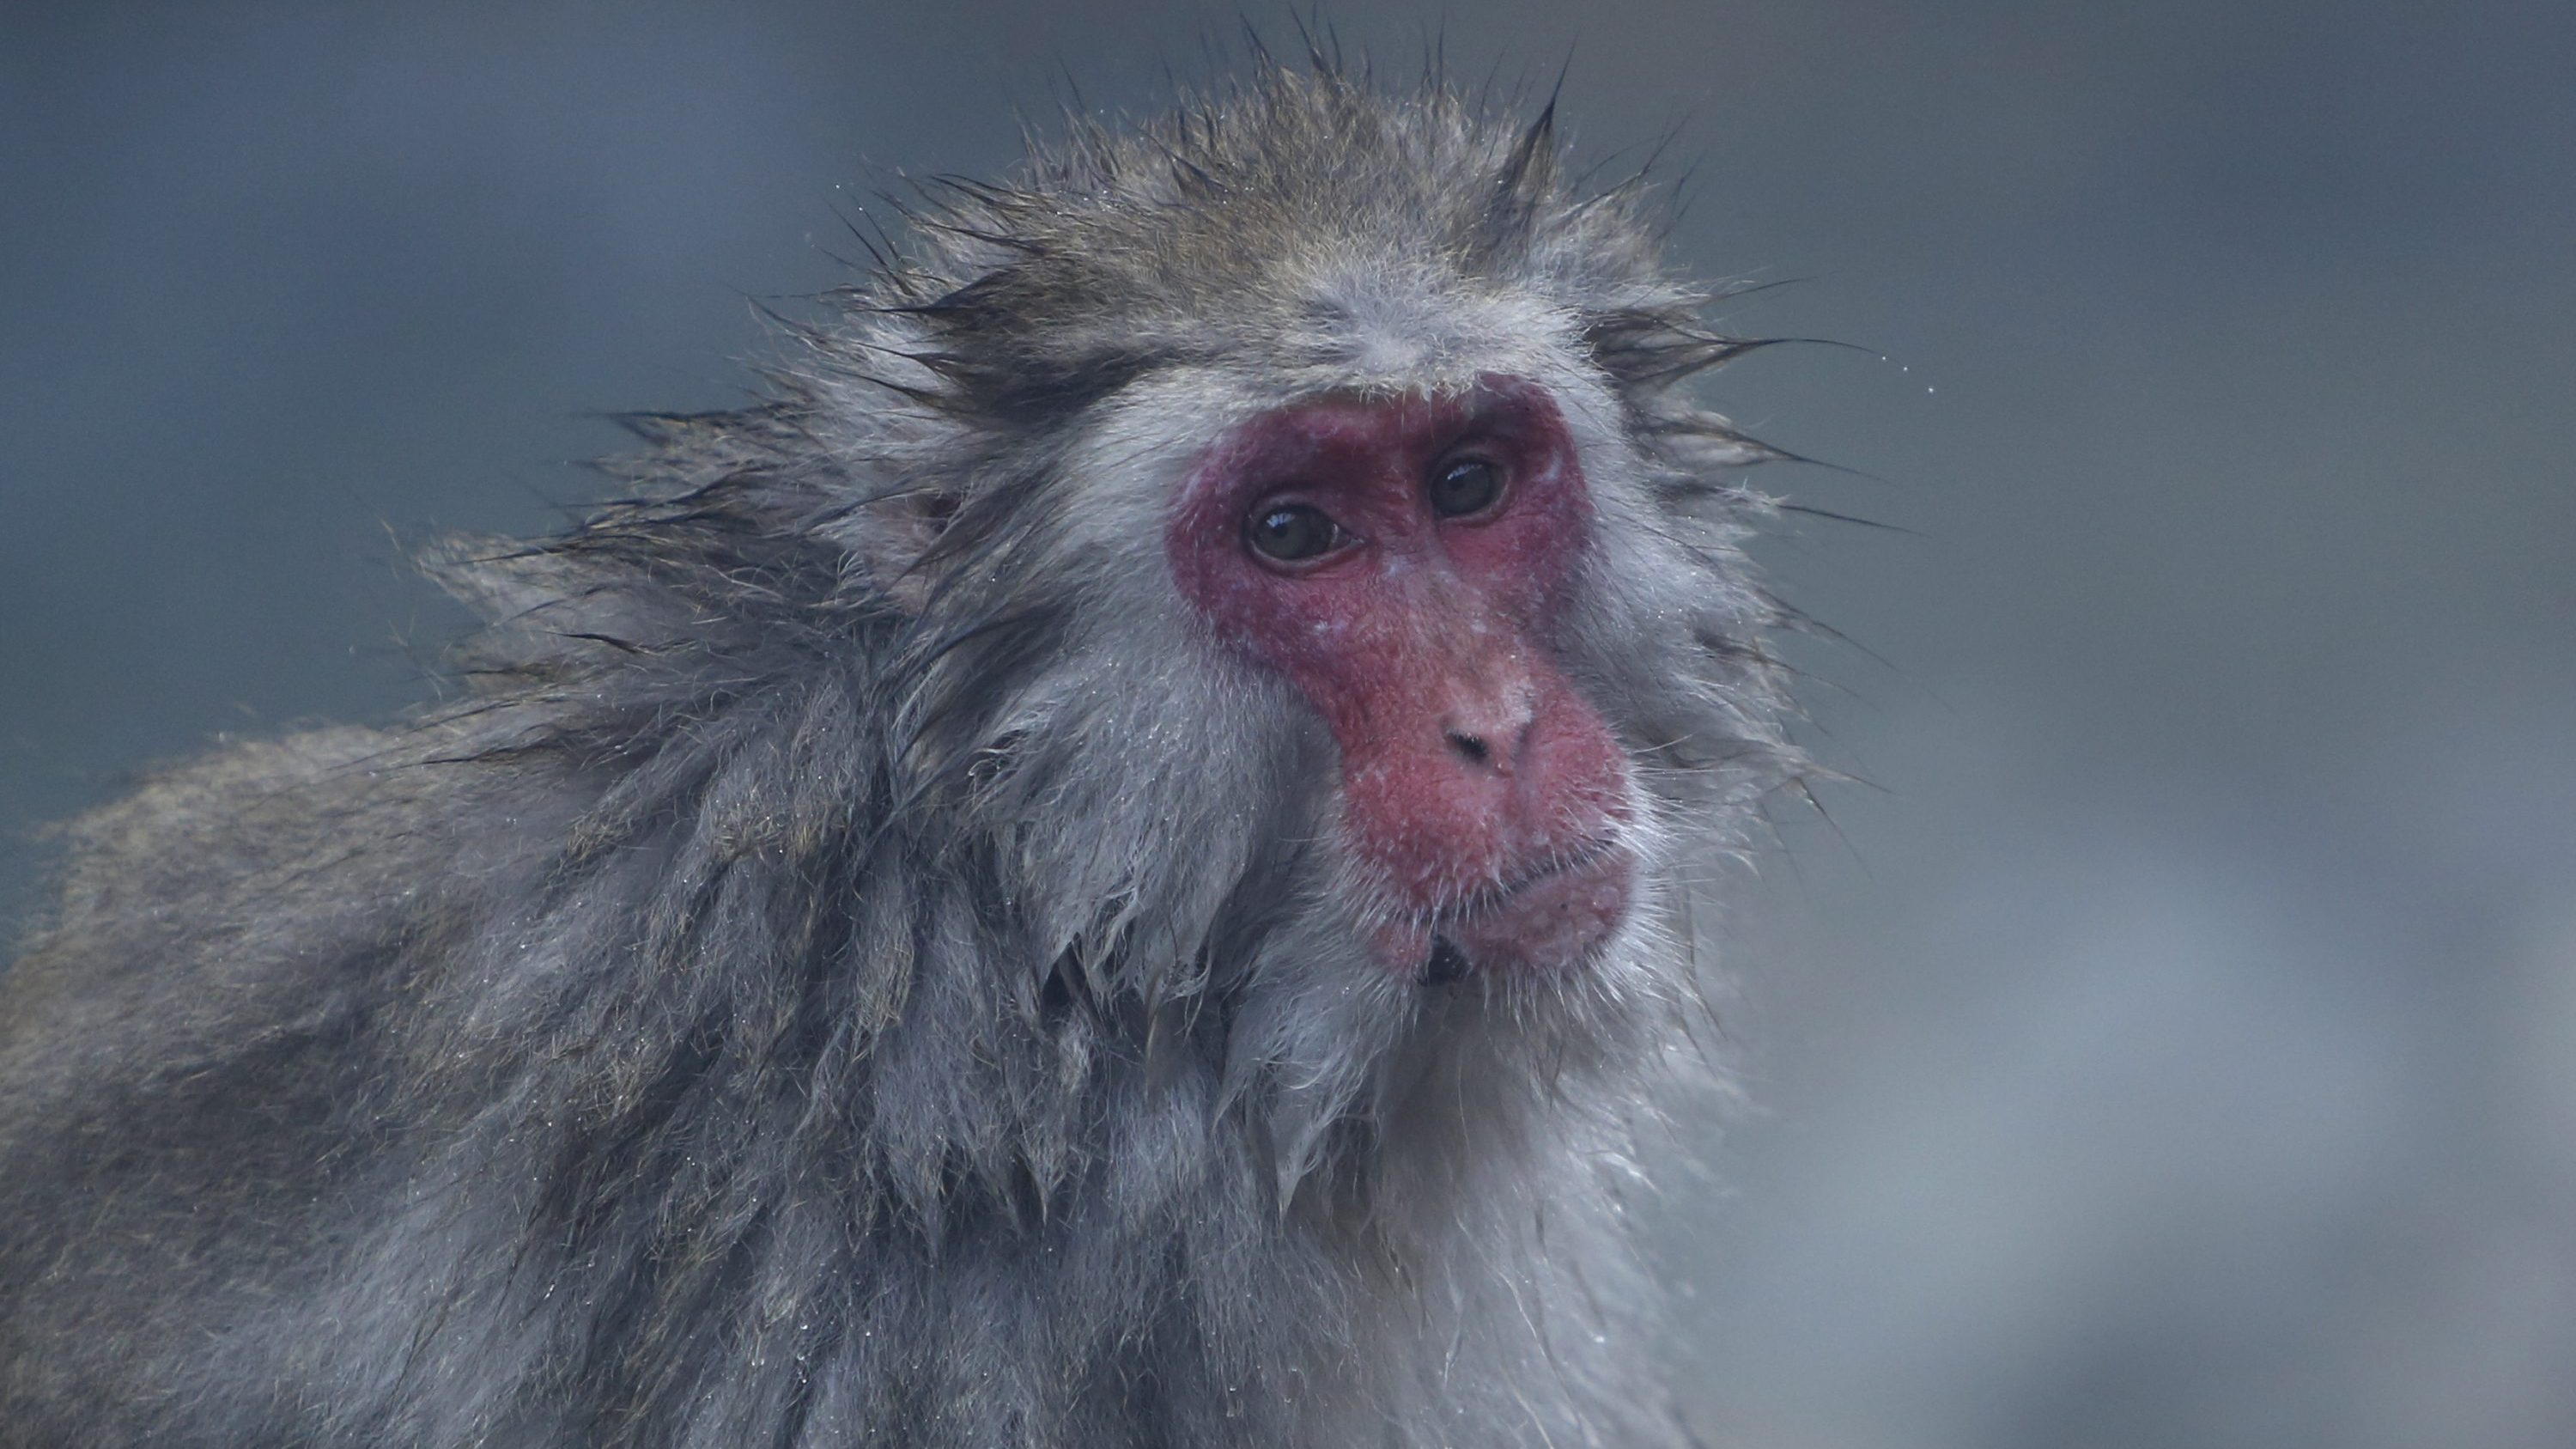 A Japanese macaque (or so called Snow Monkey) takes a rest on rocks after soaking in a hot spring at a valley in Yamanouchi town, Nagano prefecture, Japan, November 30, 2015.